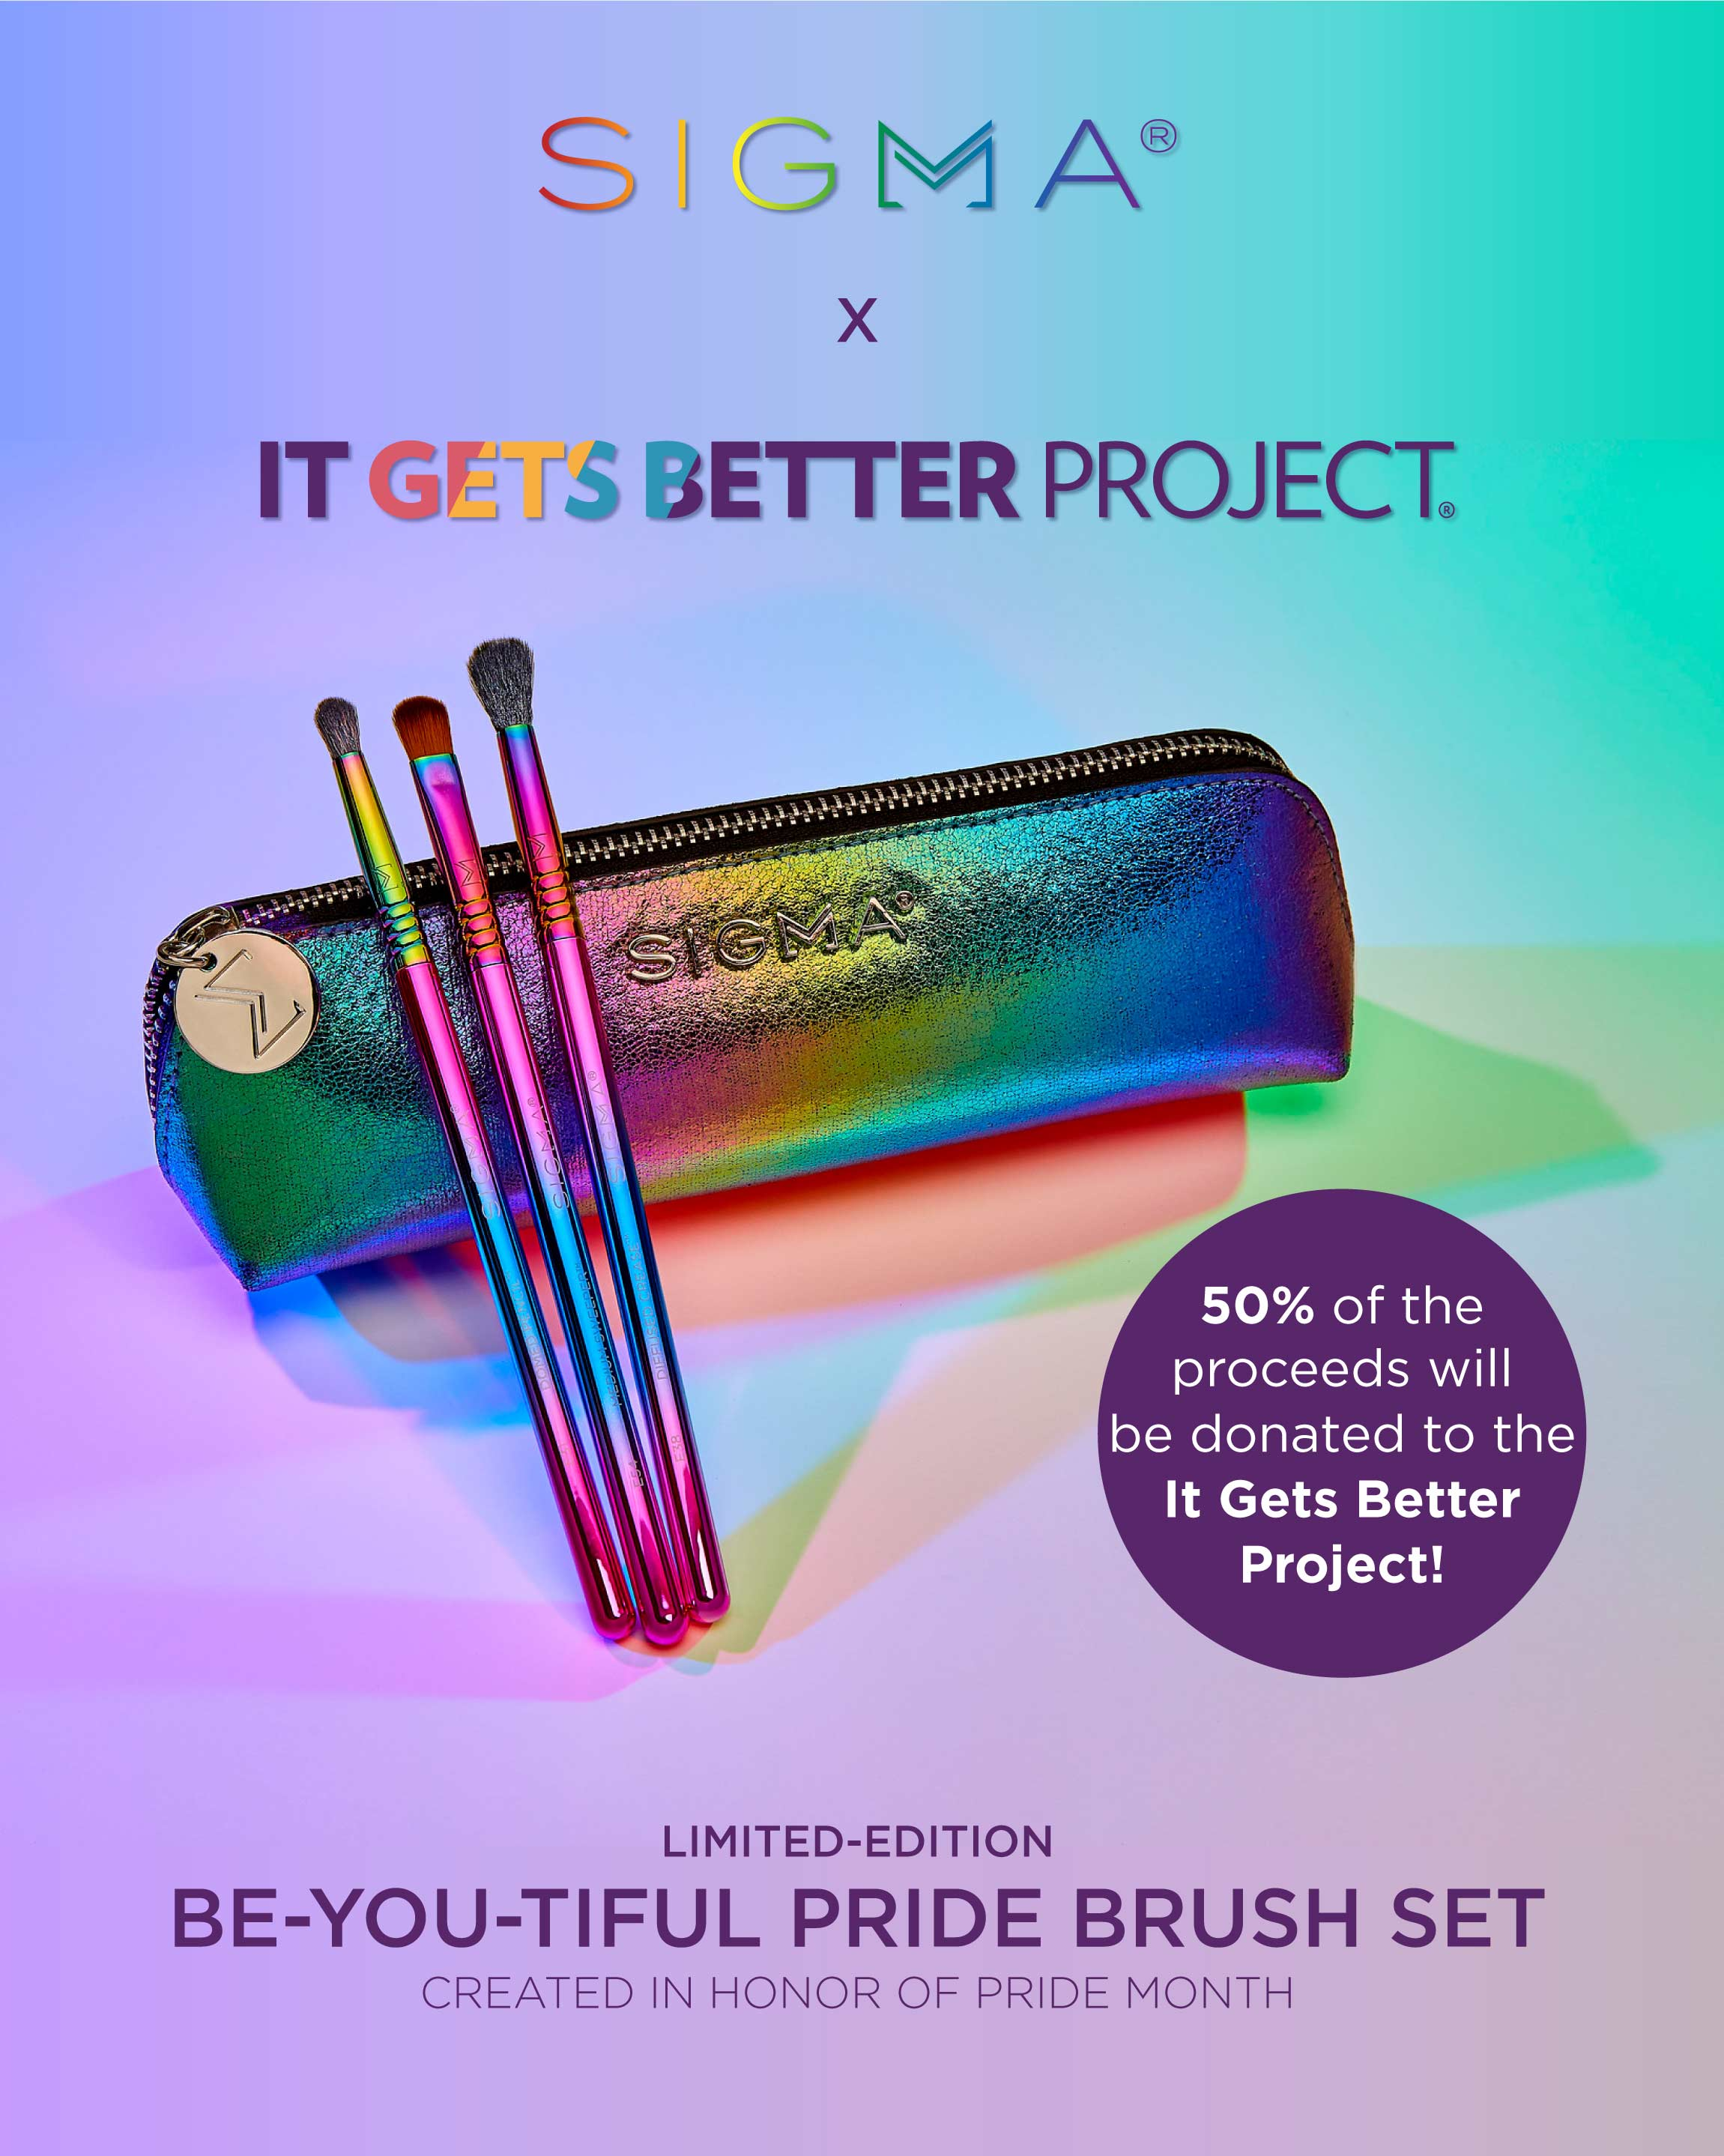 Sigma Beauty x It Gets Better Project | Be-YOU-tiful Pride Brush Set